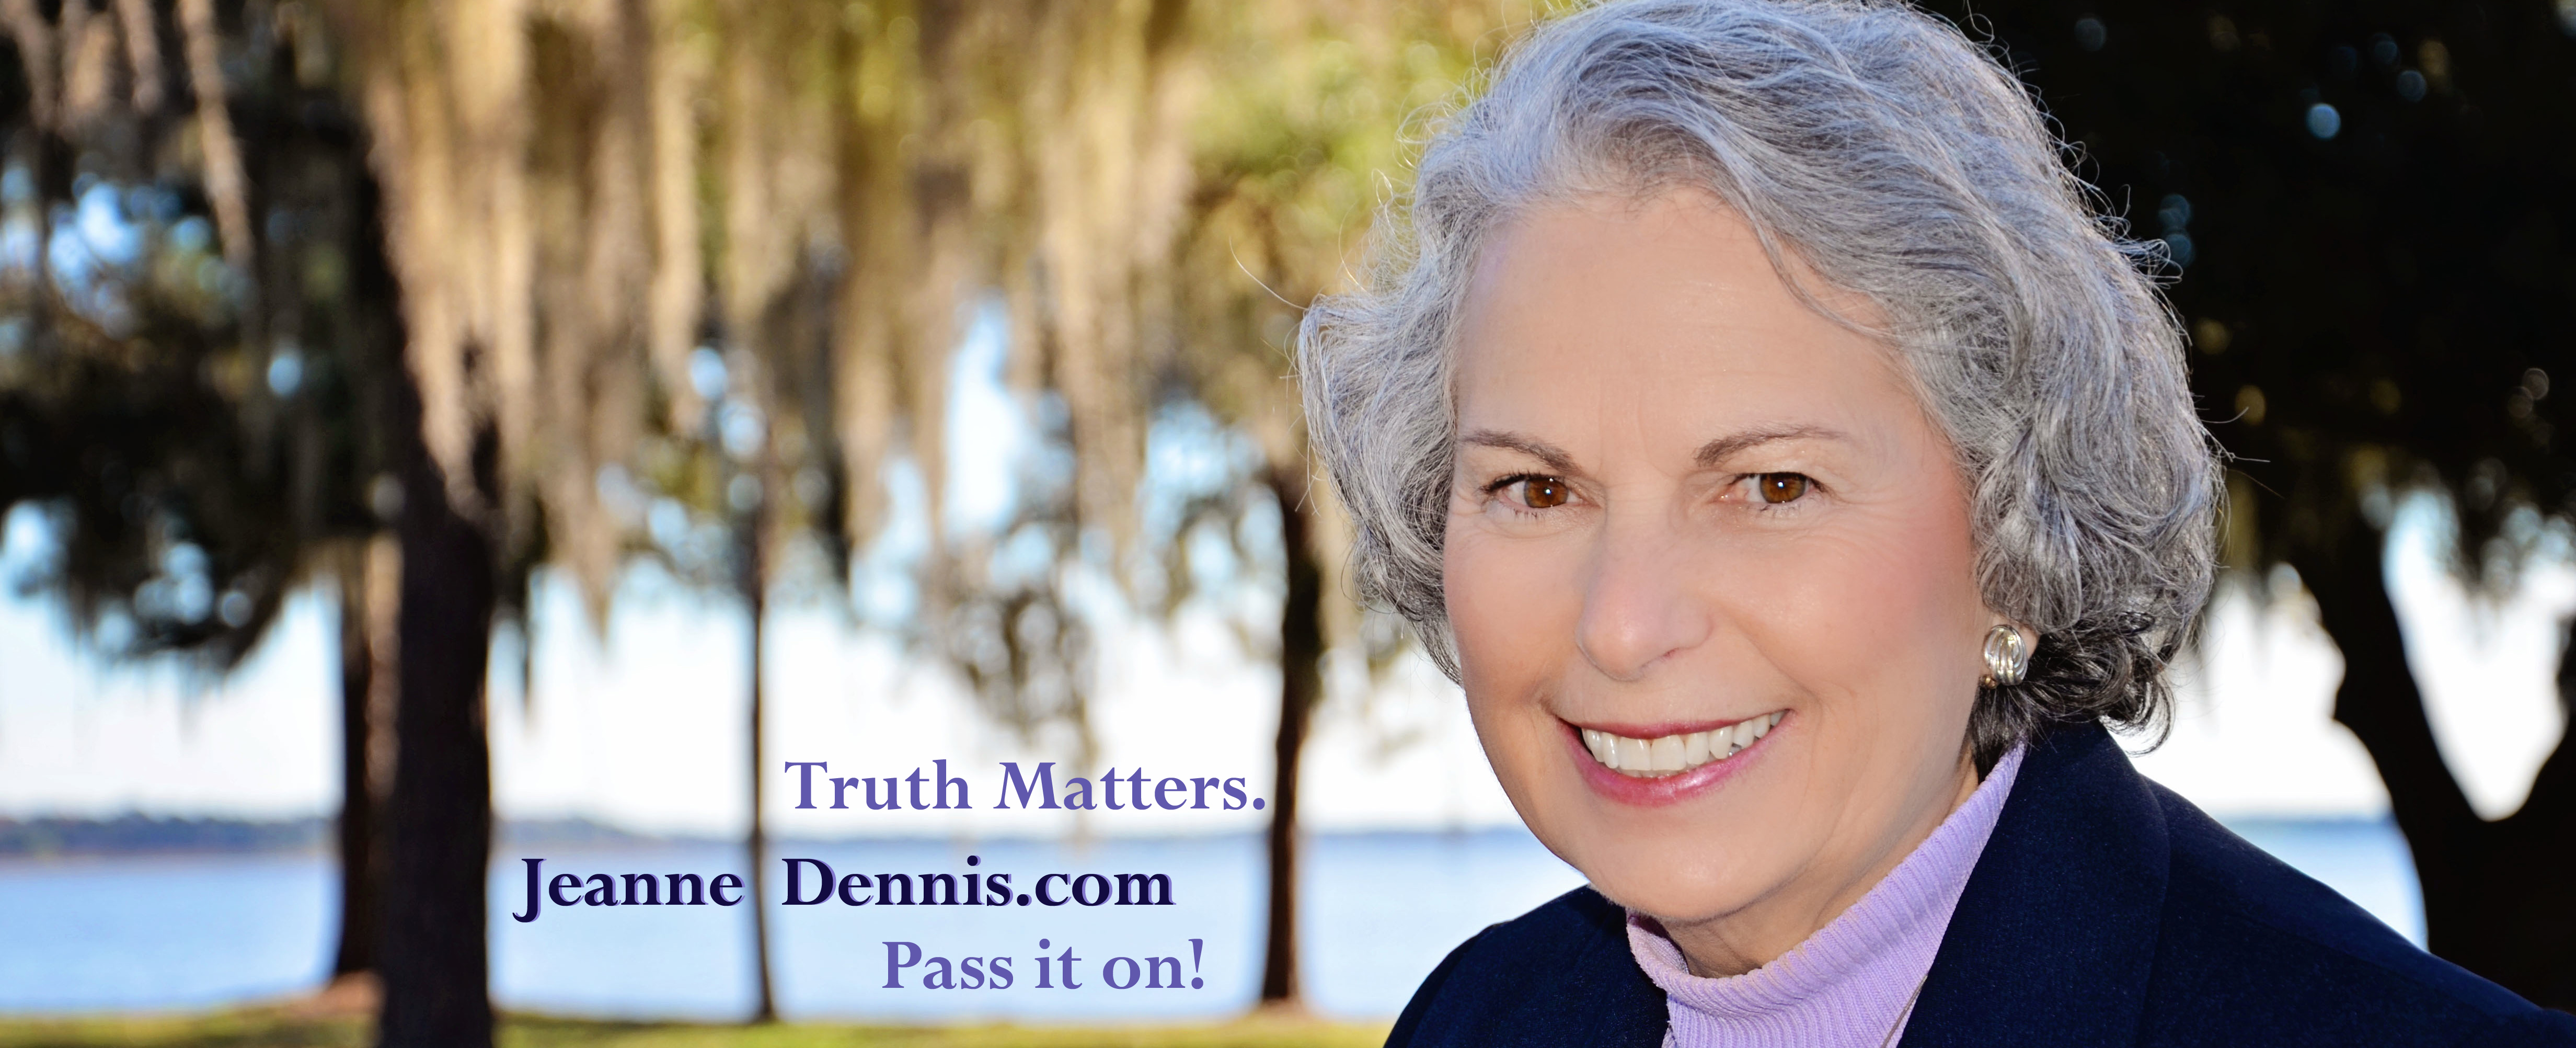 Jeanne Dennis Truth Matters. Pass it on.